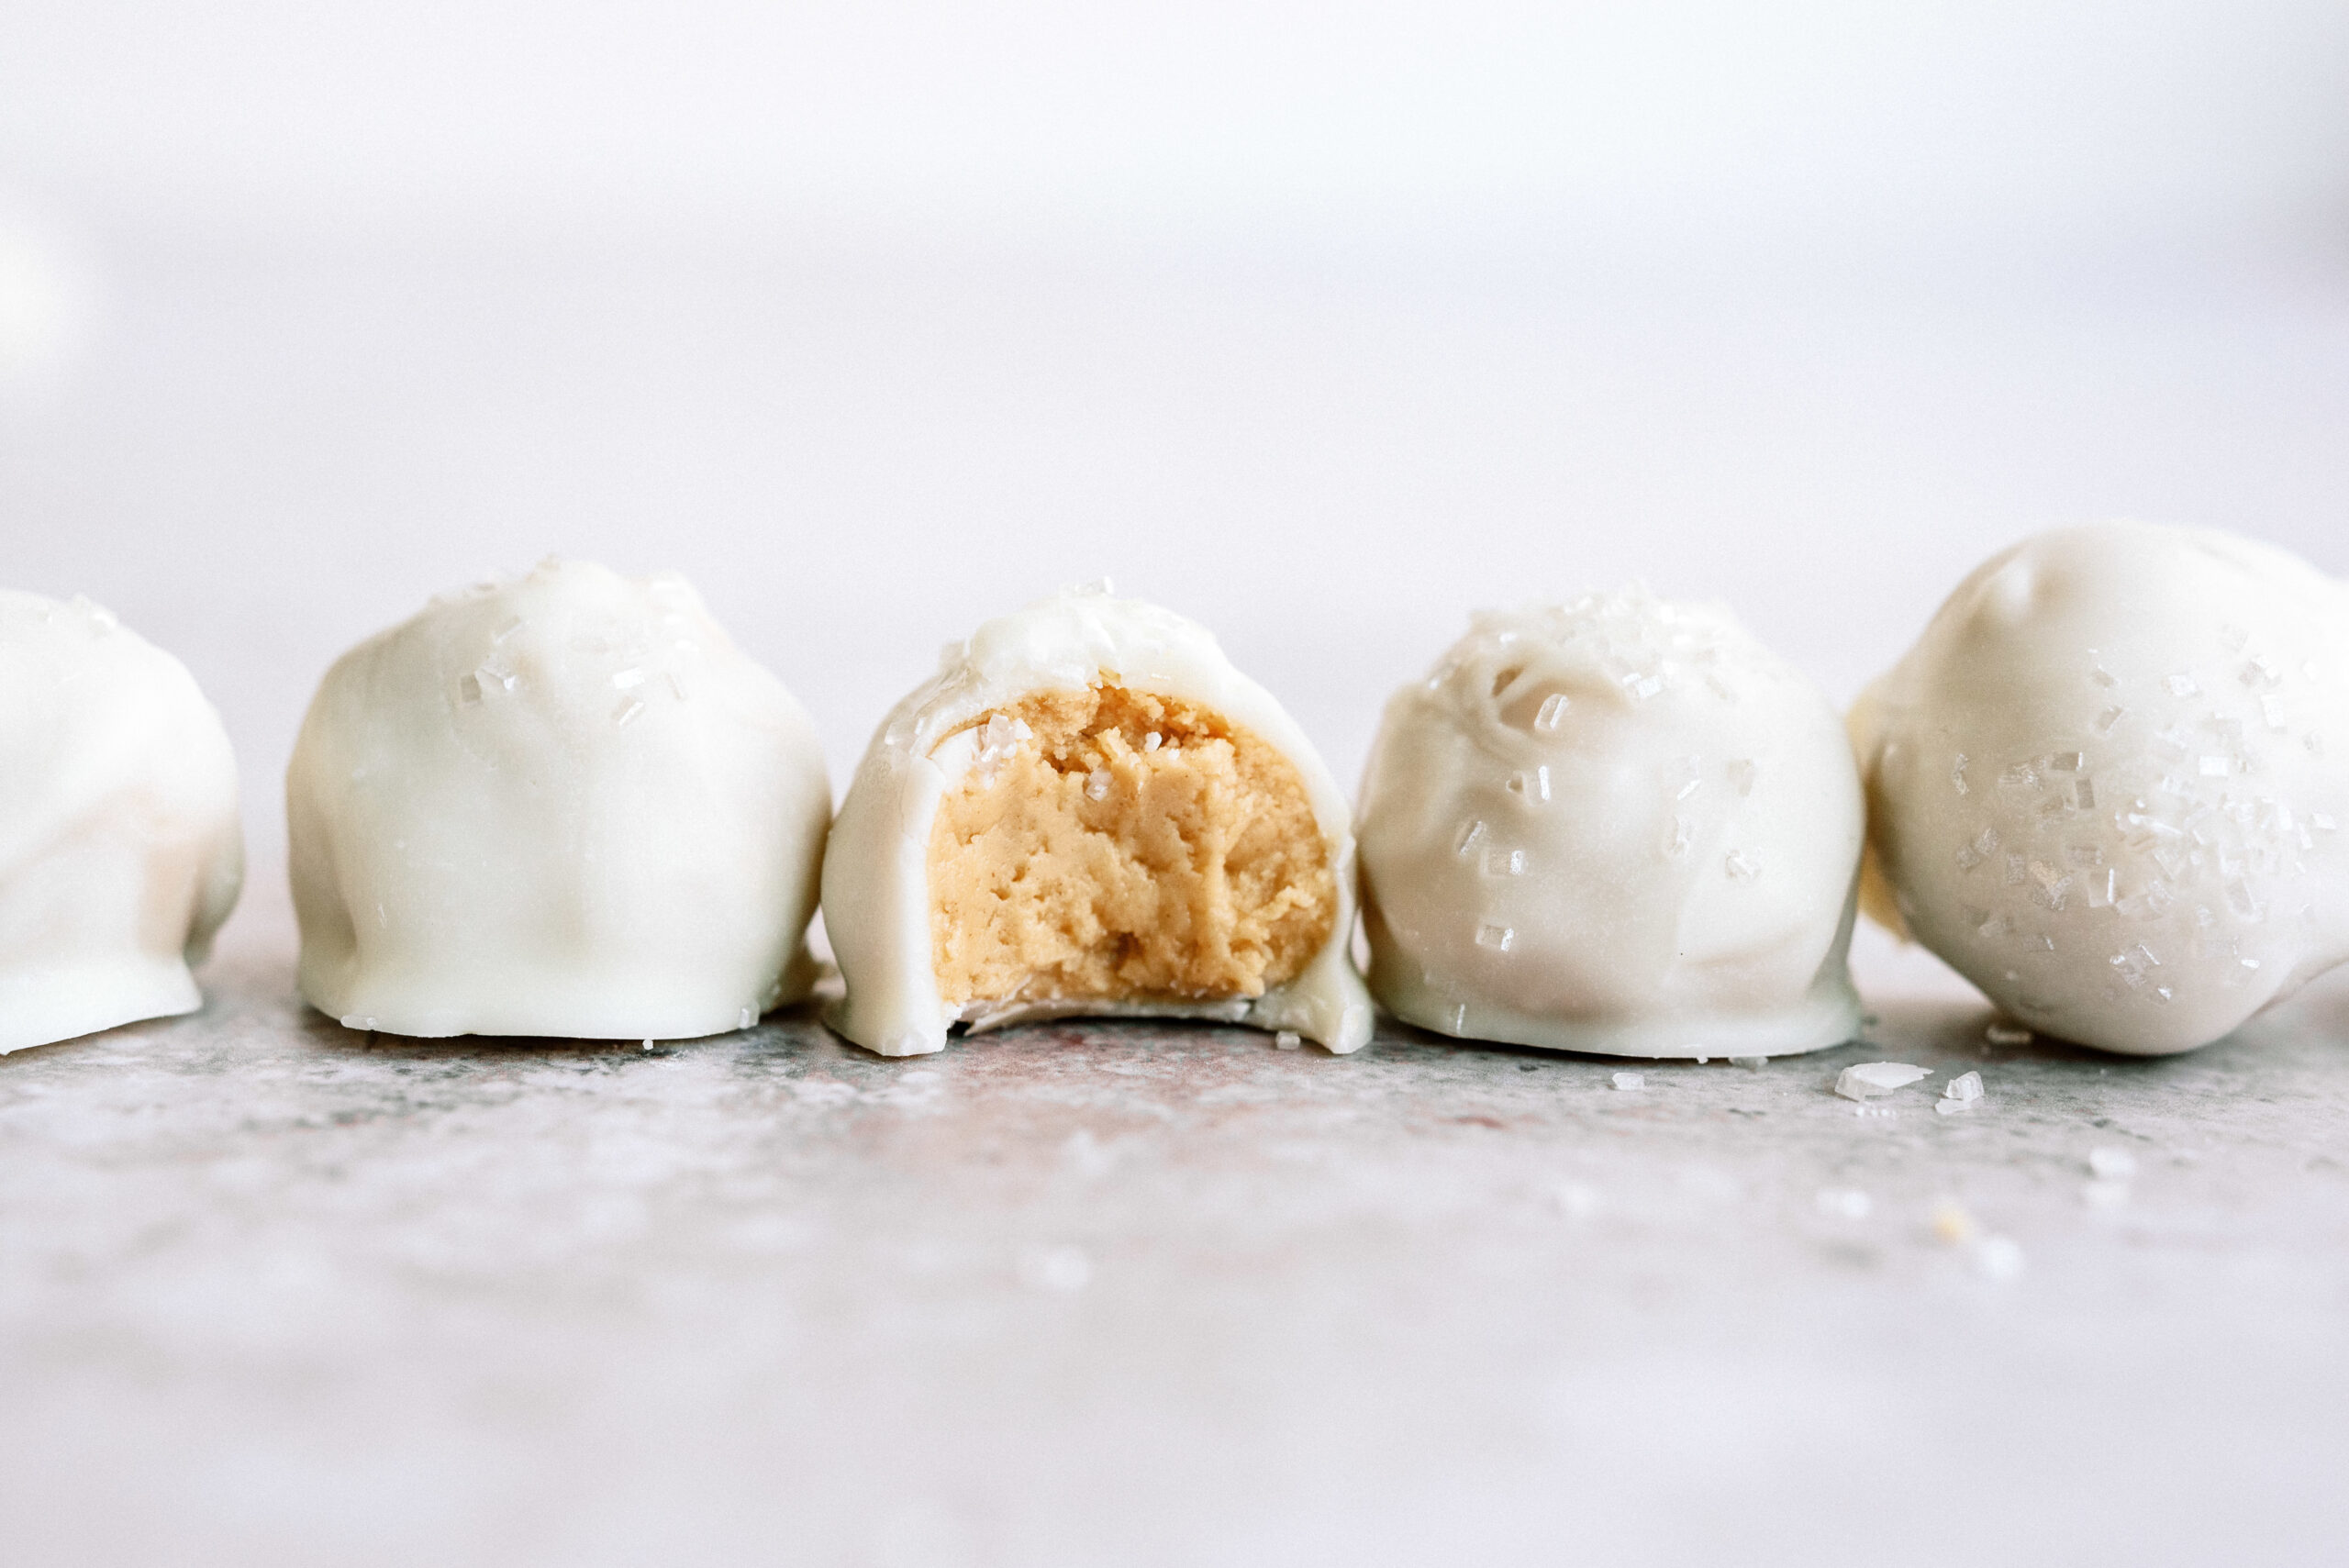 peanut butter snowballs in a line with a bite out of the middle one